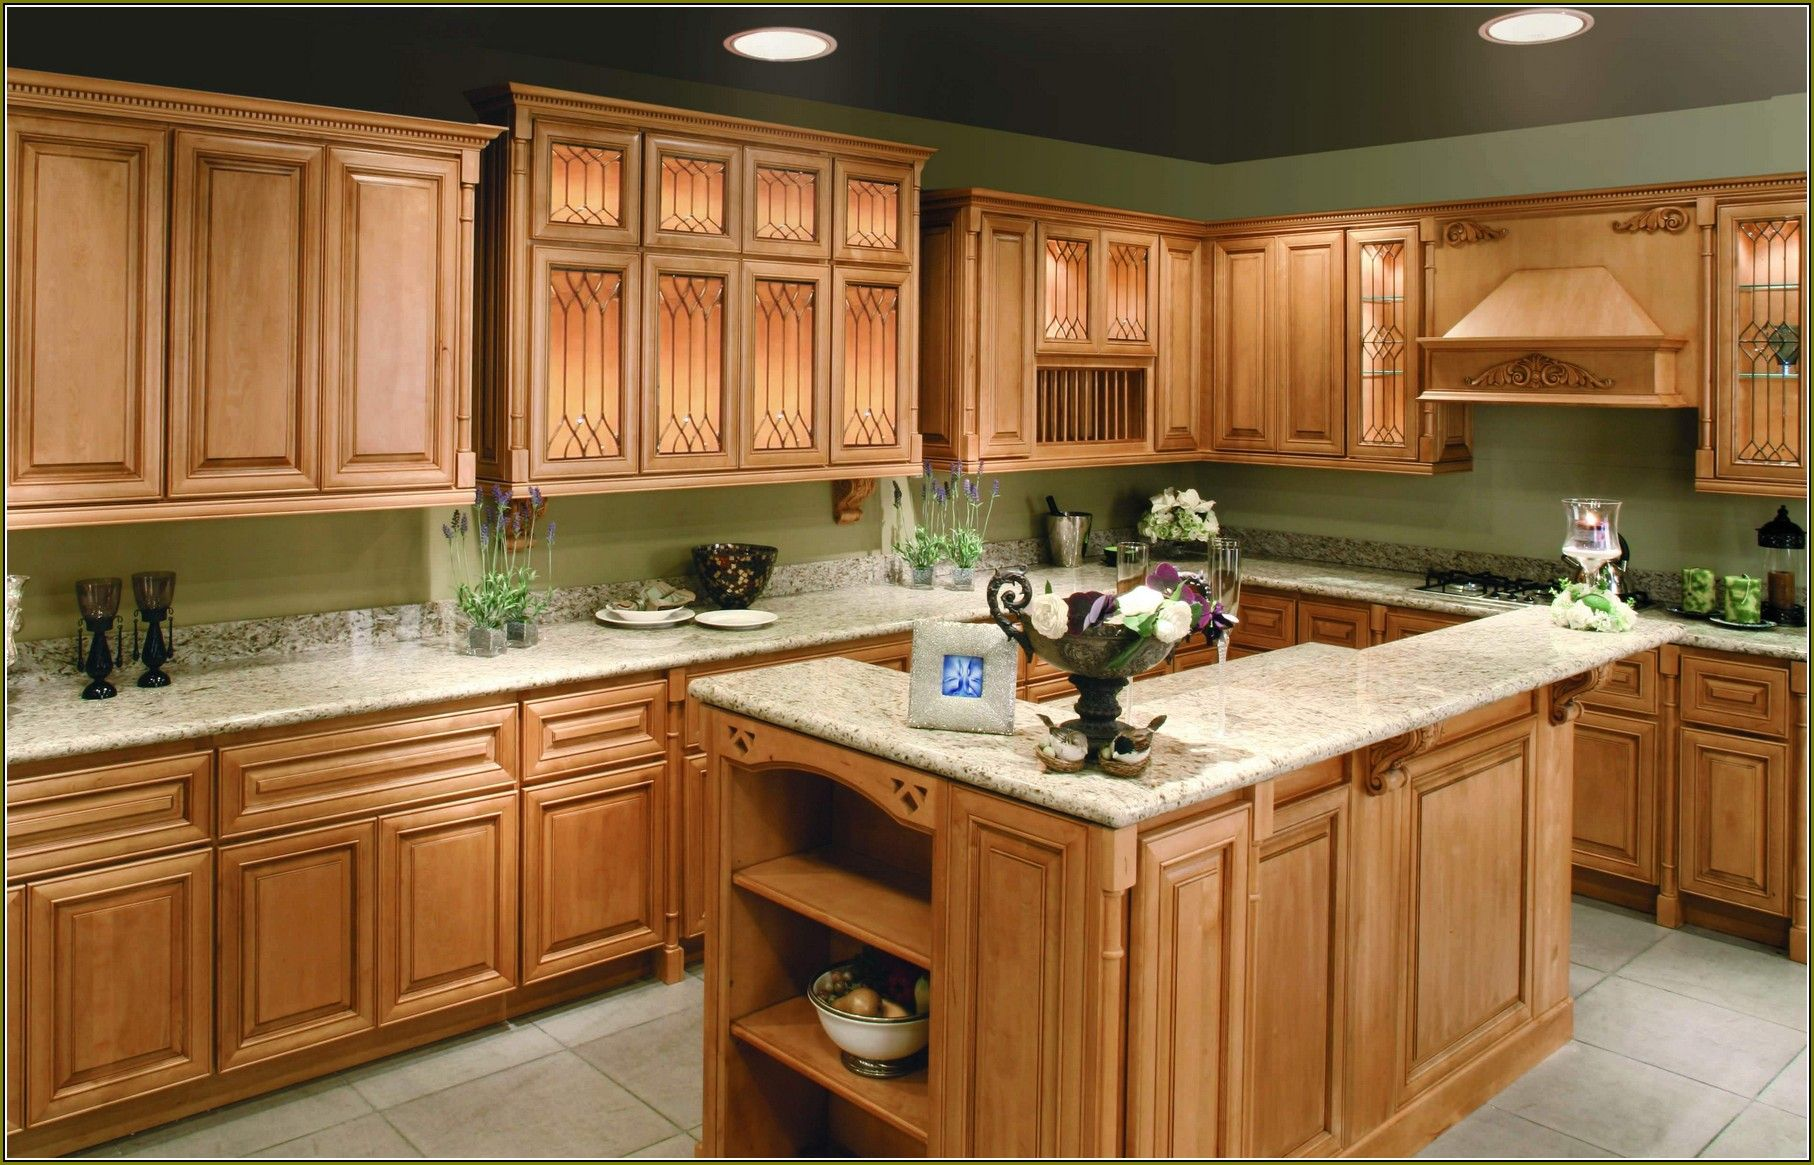 Kitchen Kitchen Paint Color Ideas Maple Cabinets 2320 Kitchen Paint Colors With Natural Maple Cabinets Honey Oak Cabinets Kitchen Design Kitchen Cabinet Design